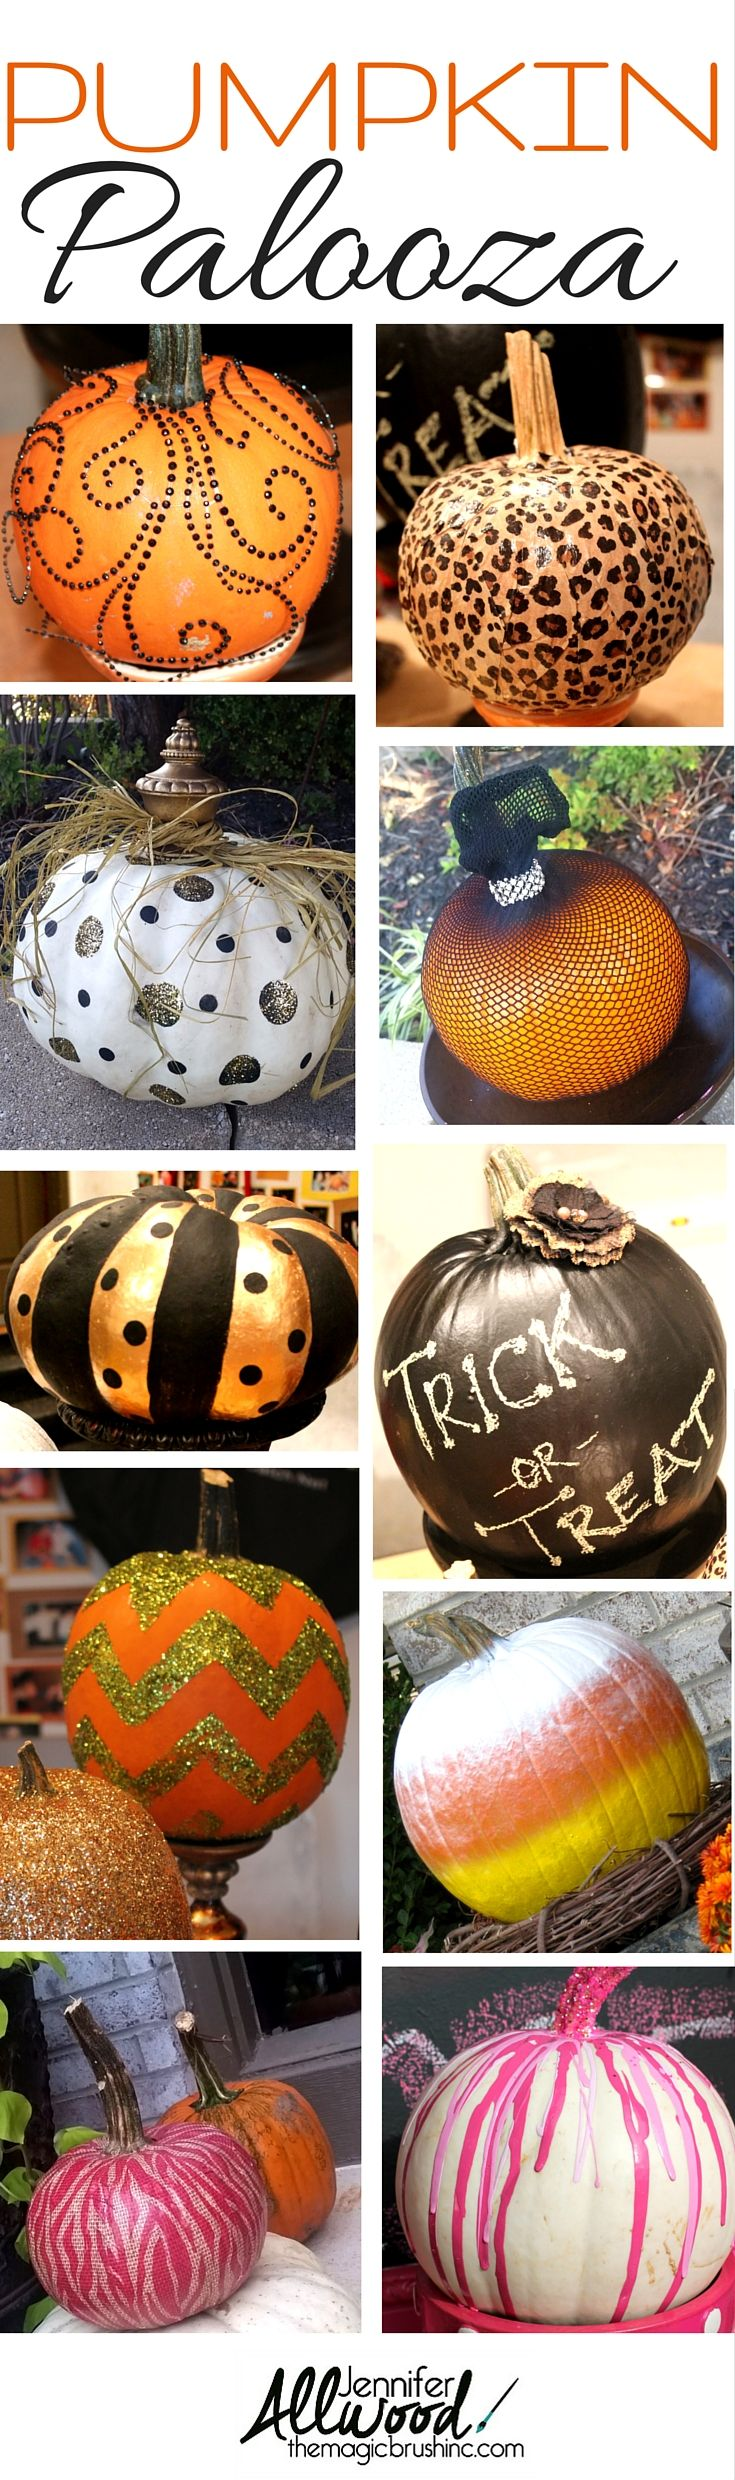 Tons of pumpkin decorating ideas from theMagicBrushinc.com Decoupage, glitter, chalk, chevron, pink, spray paint, fishnet pumpkins and more!